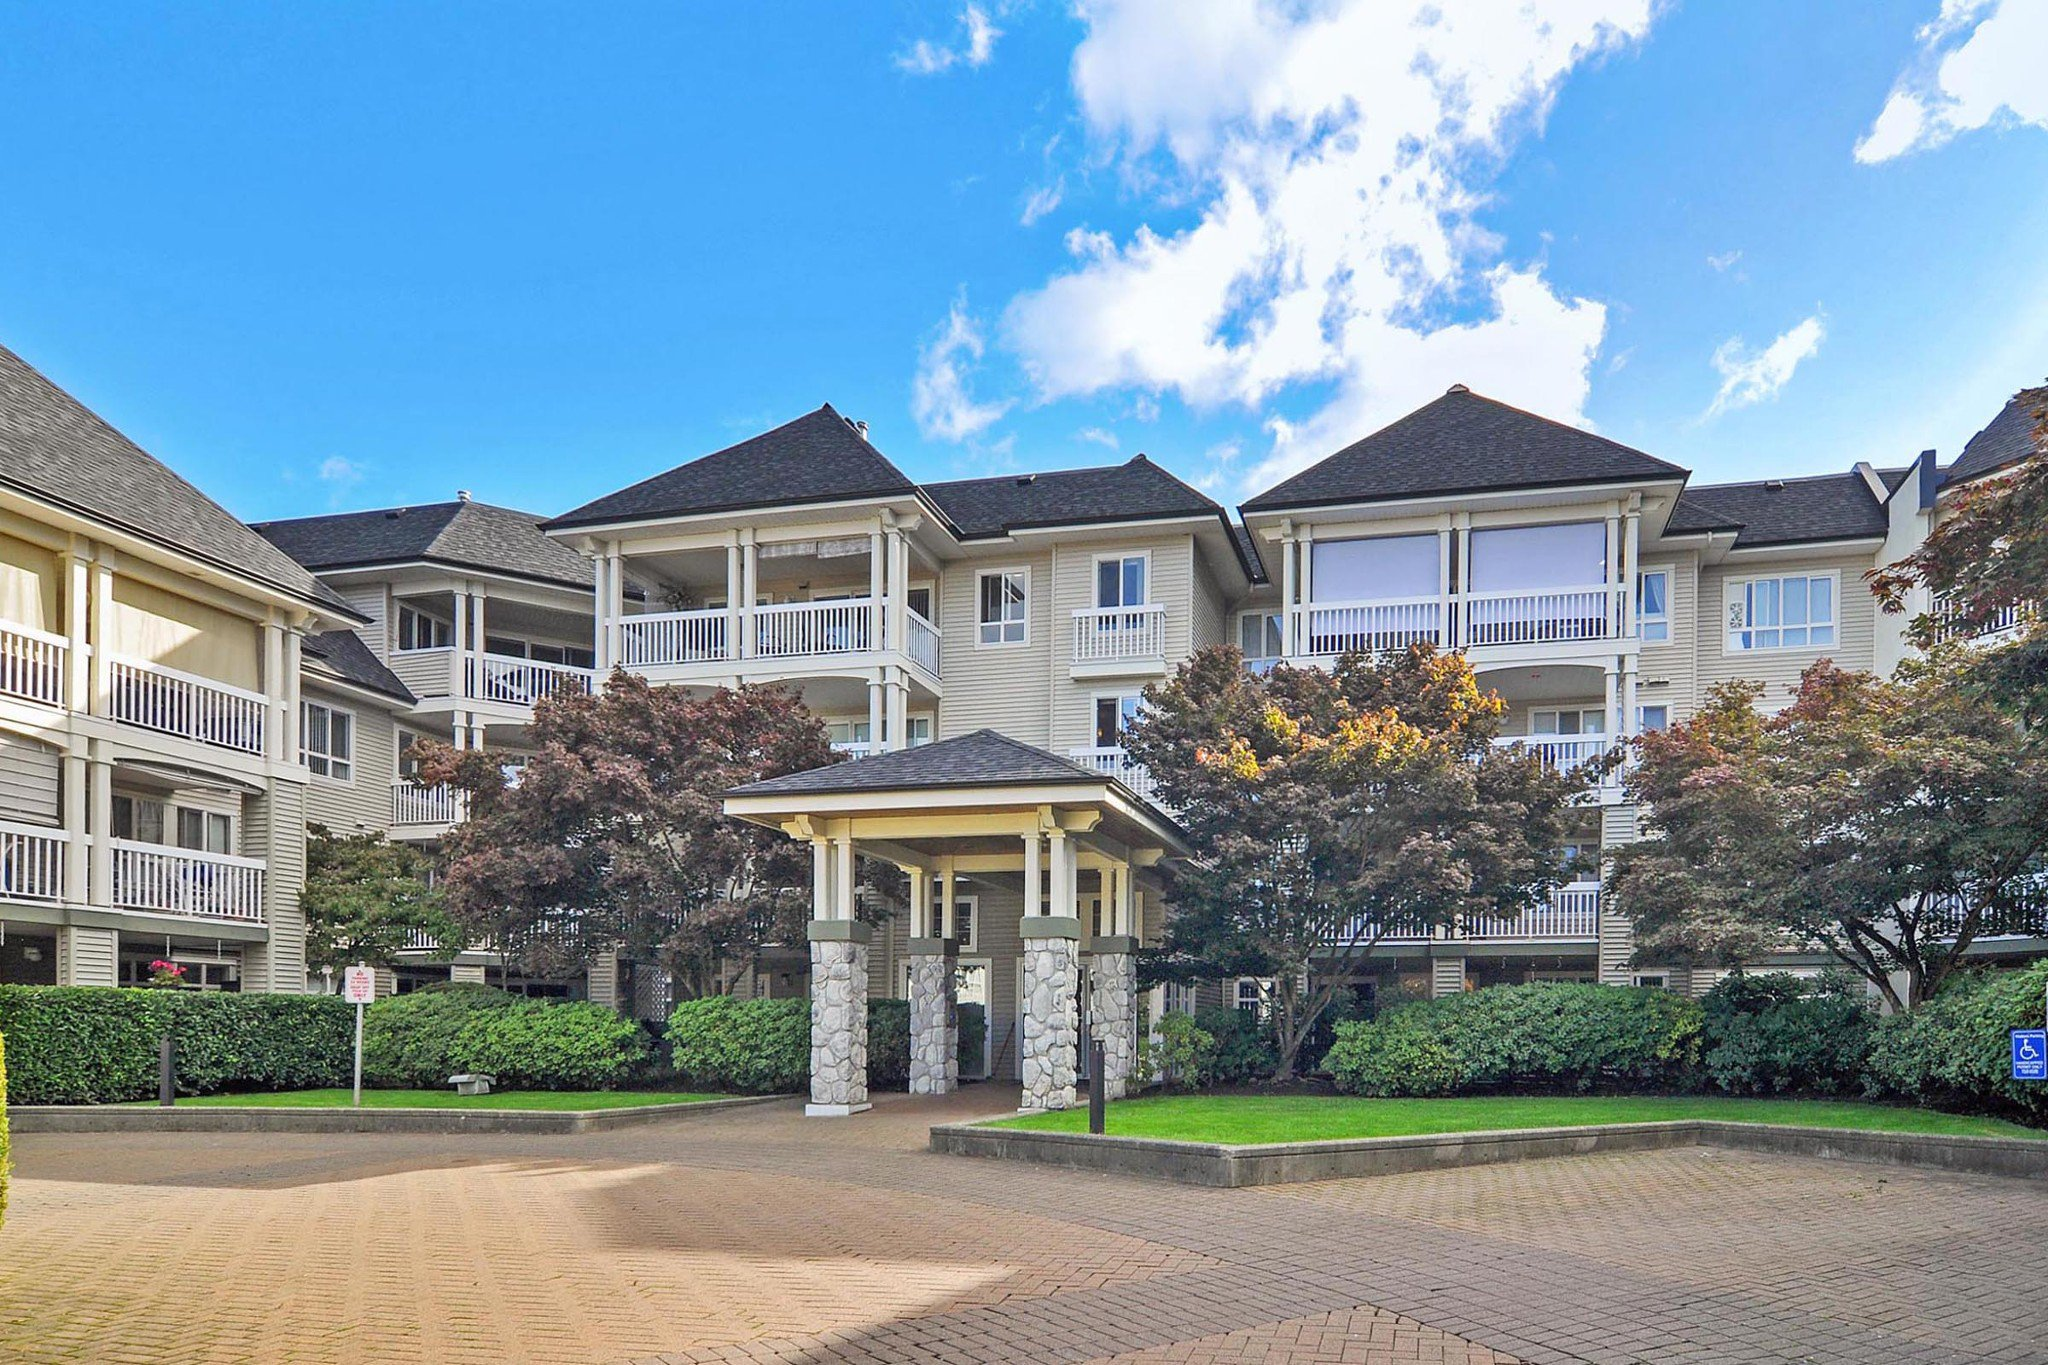 "Main Photo: 216 22022 49 Avenue in Langley: Murrayville Condo for sale in ""MURRAY GREEN"" : MLS®# R2409902"